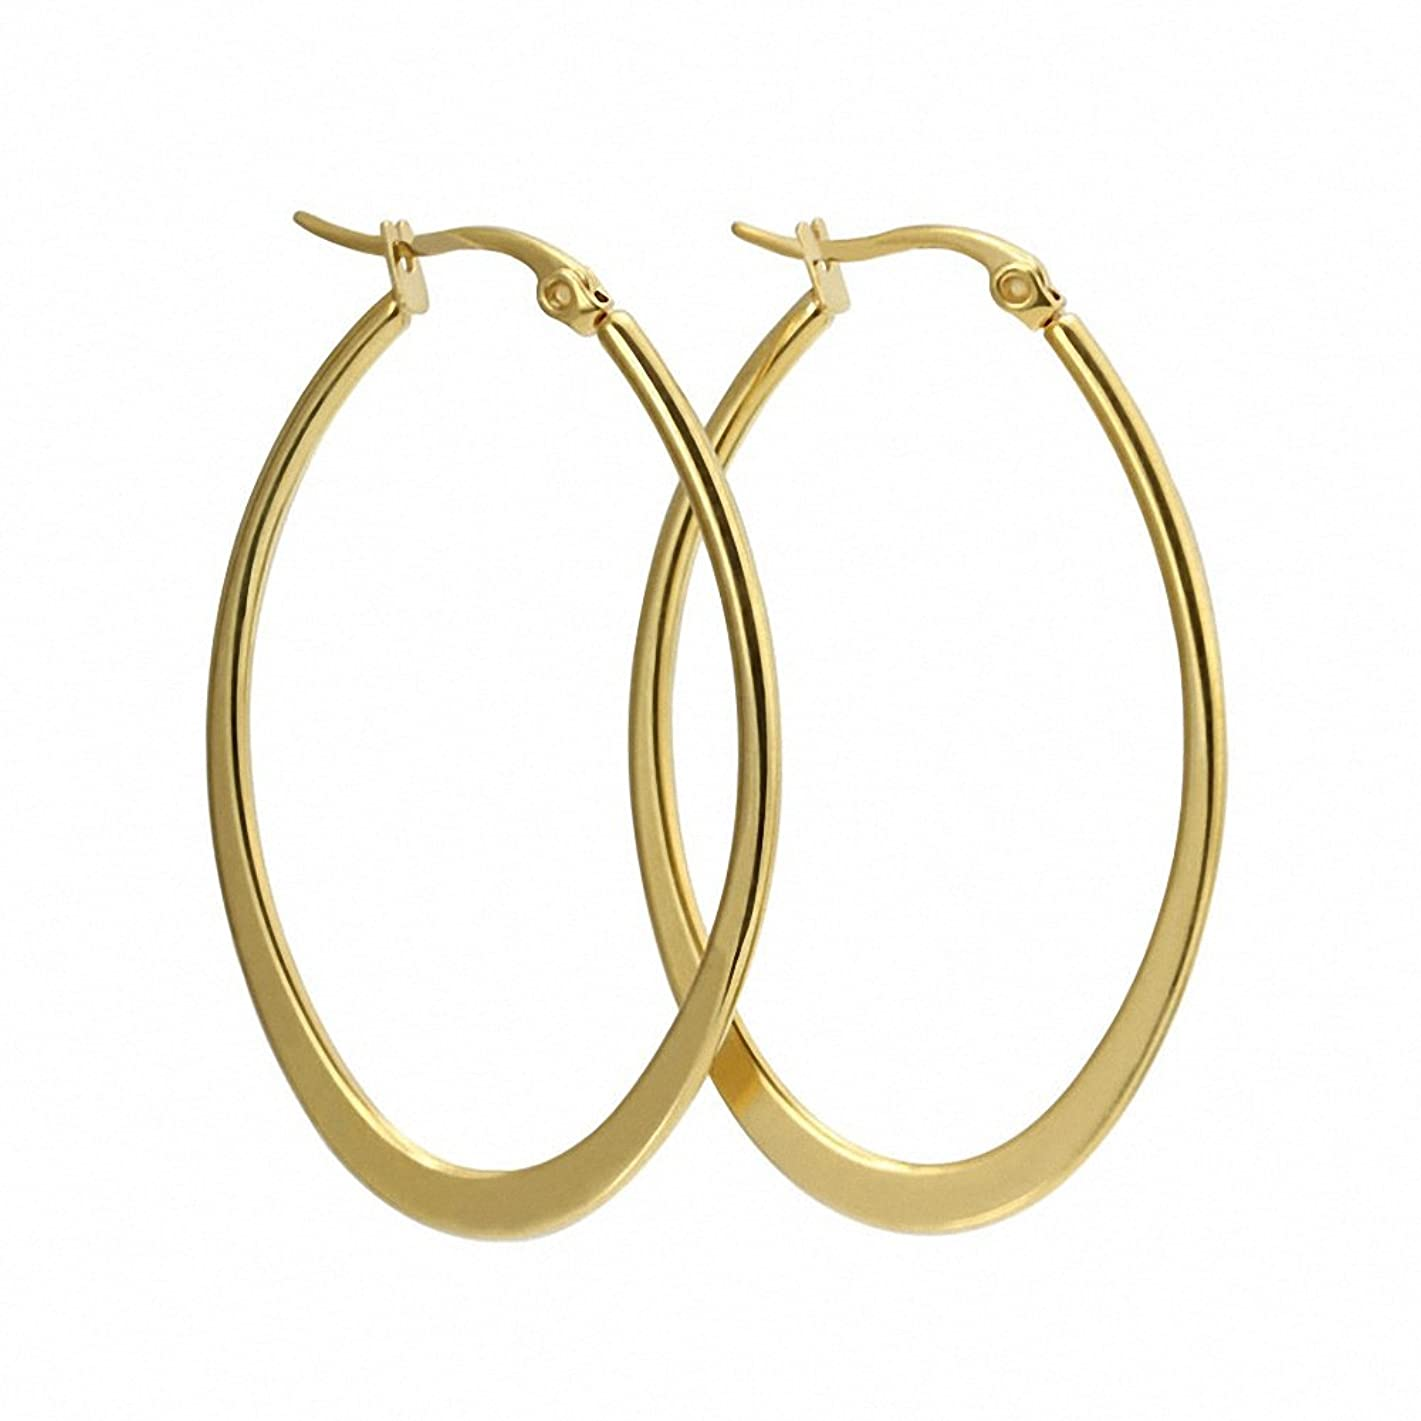 Sobly Womens Stainless Steel Top Click Closure Large Rounded Hoops Huggie Earrings